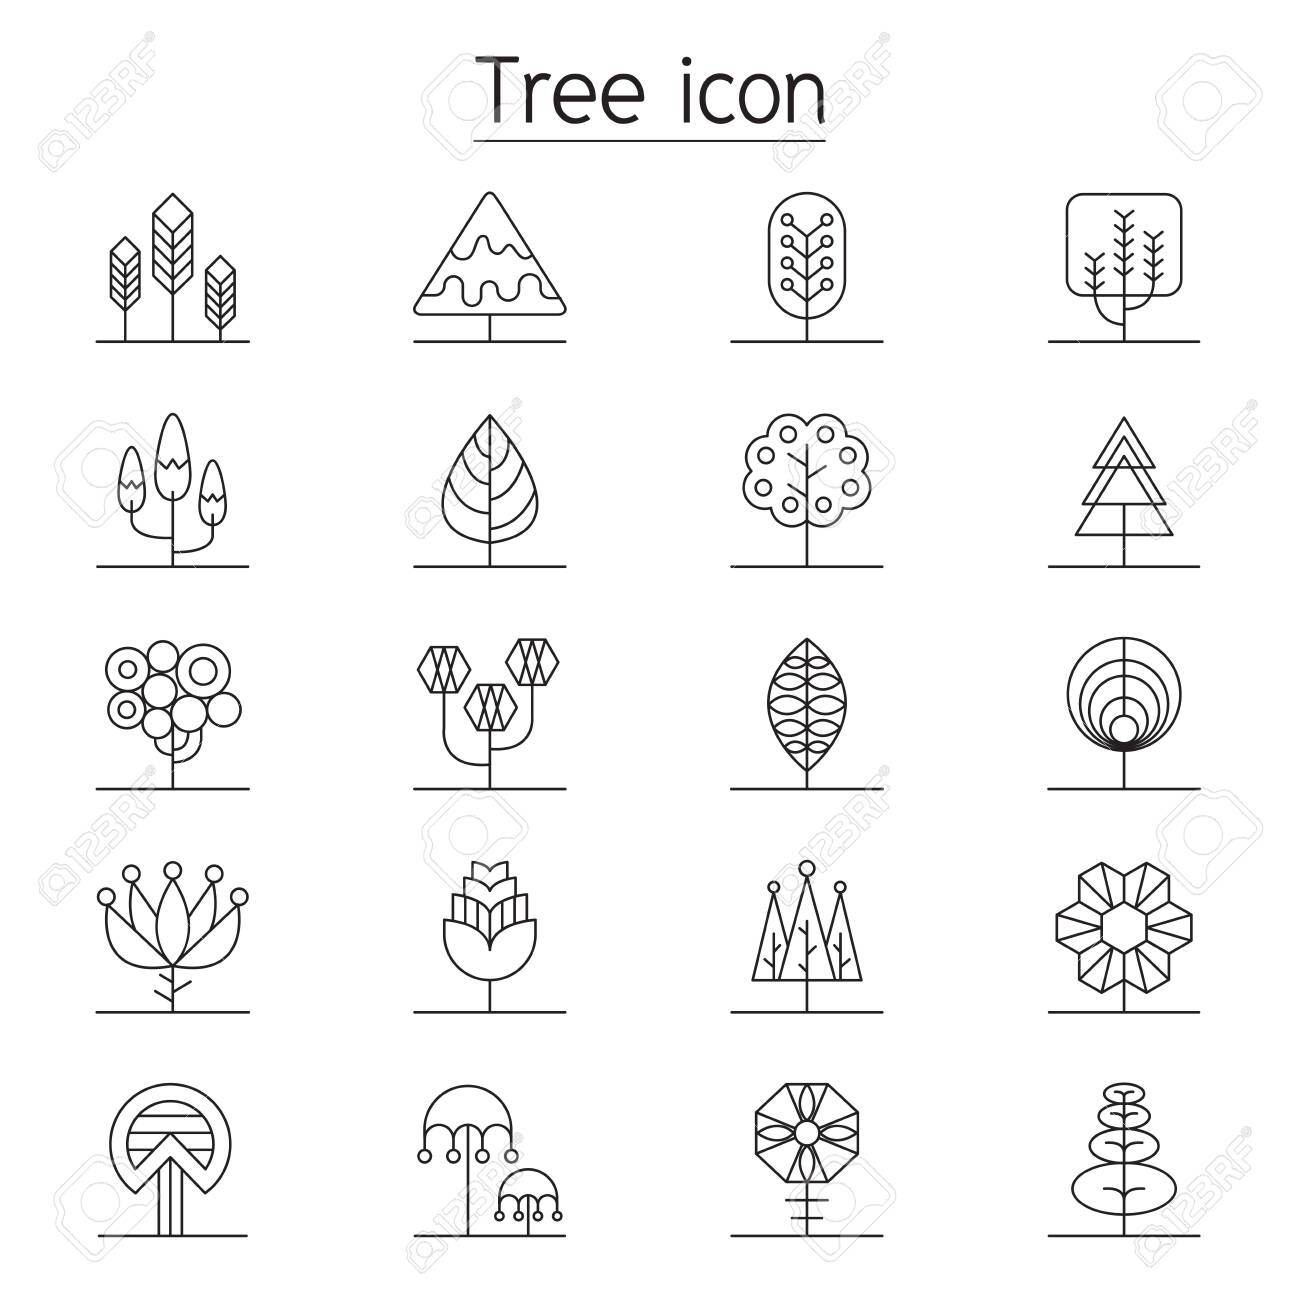 Tree icon set in thin line style - 139351215